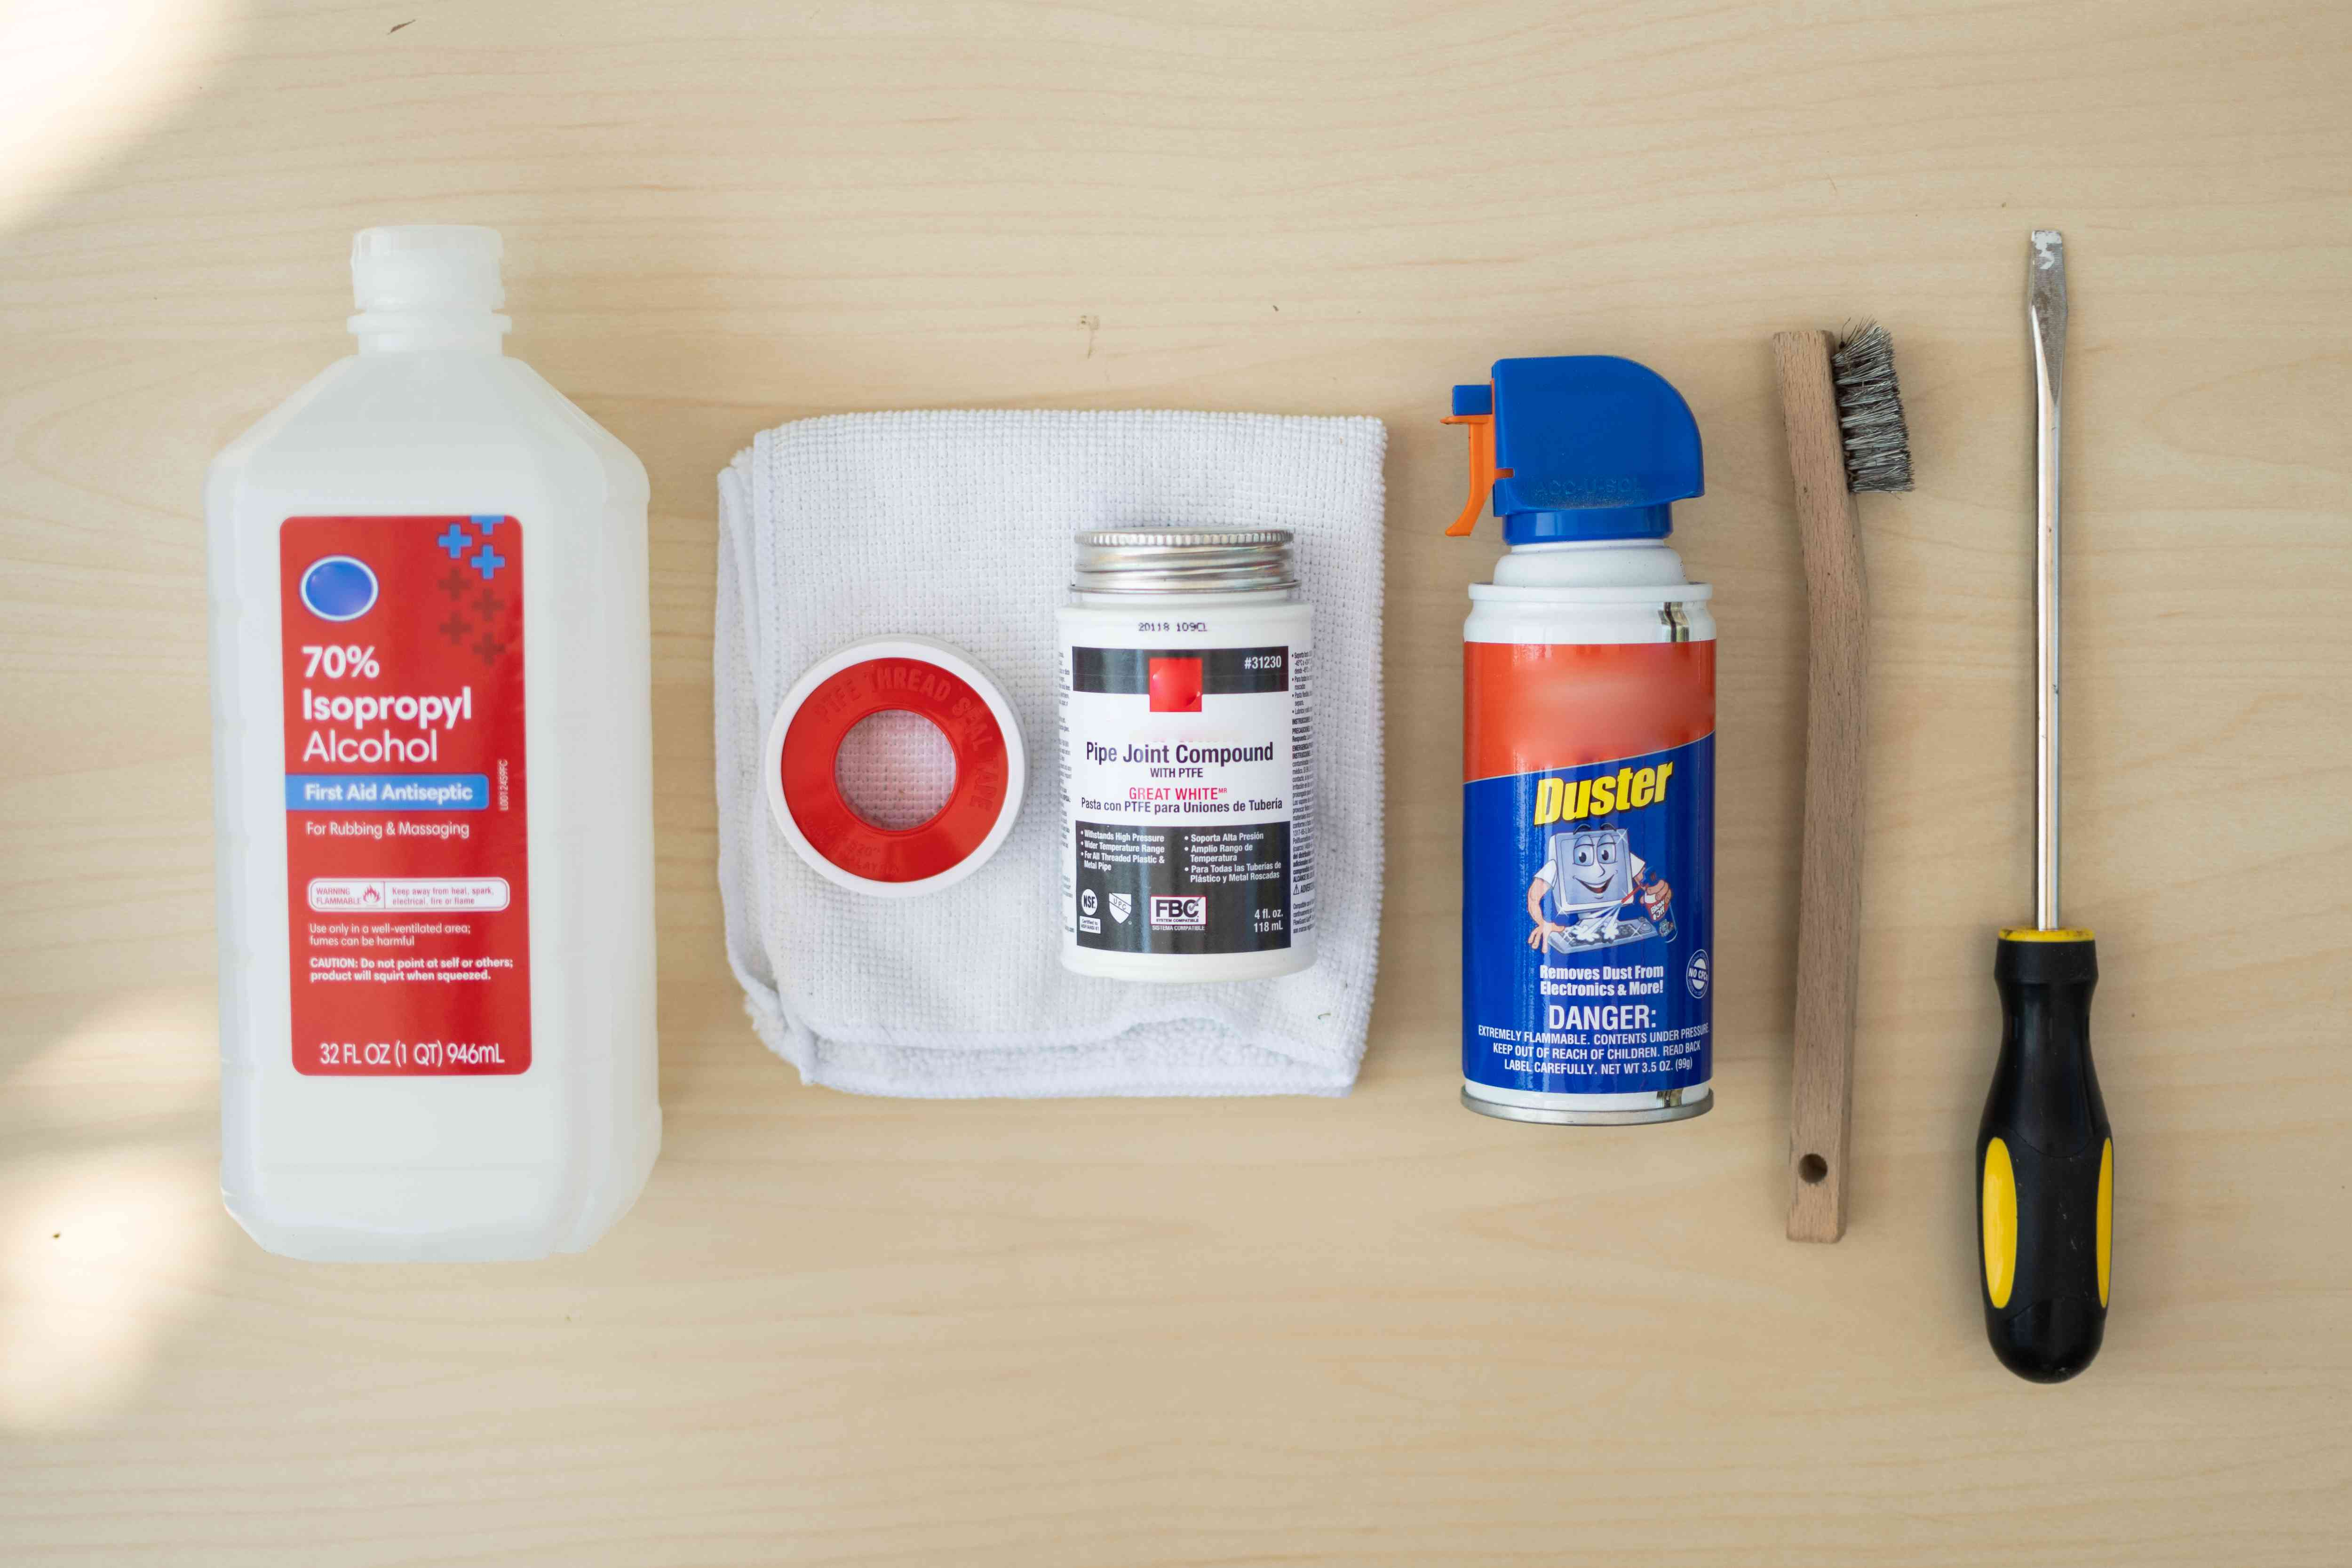 Materials and tools to use pipe dope on plumbing joints